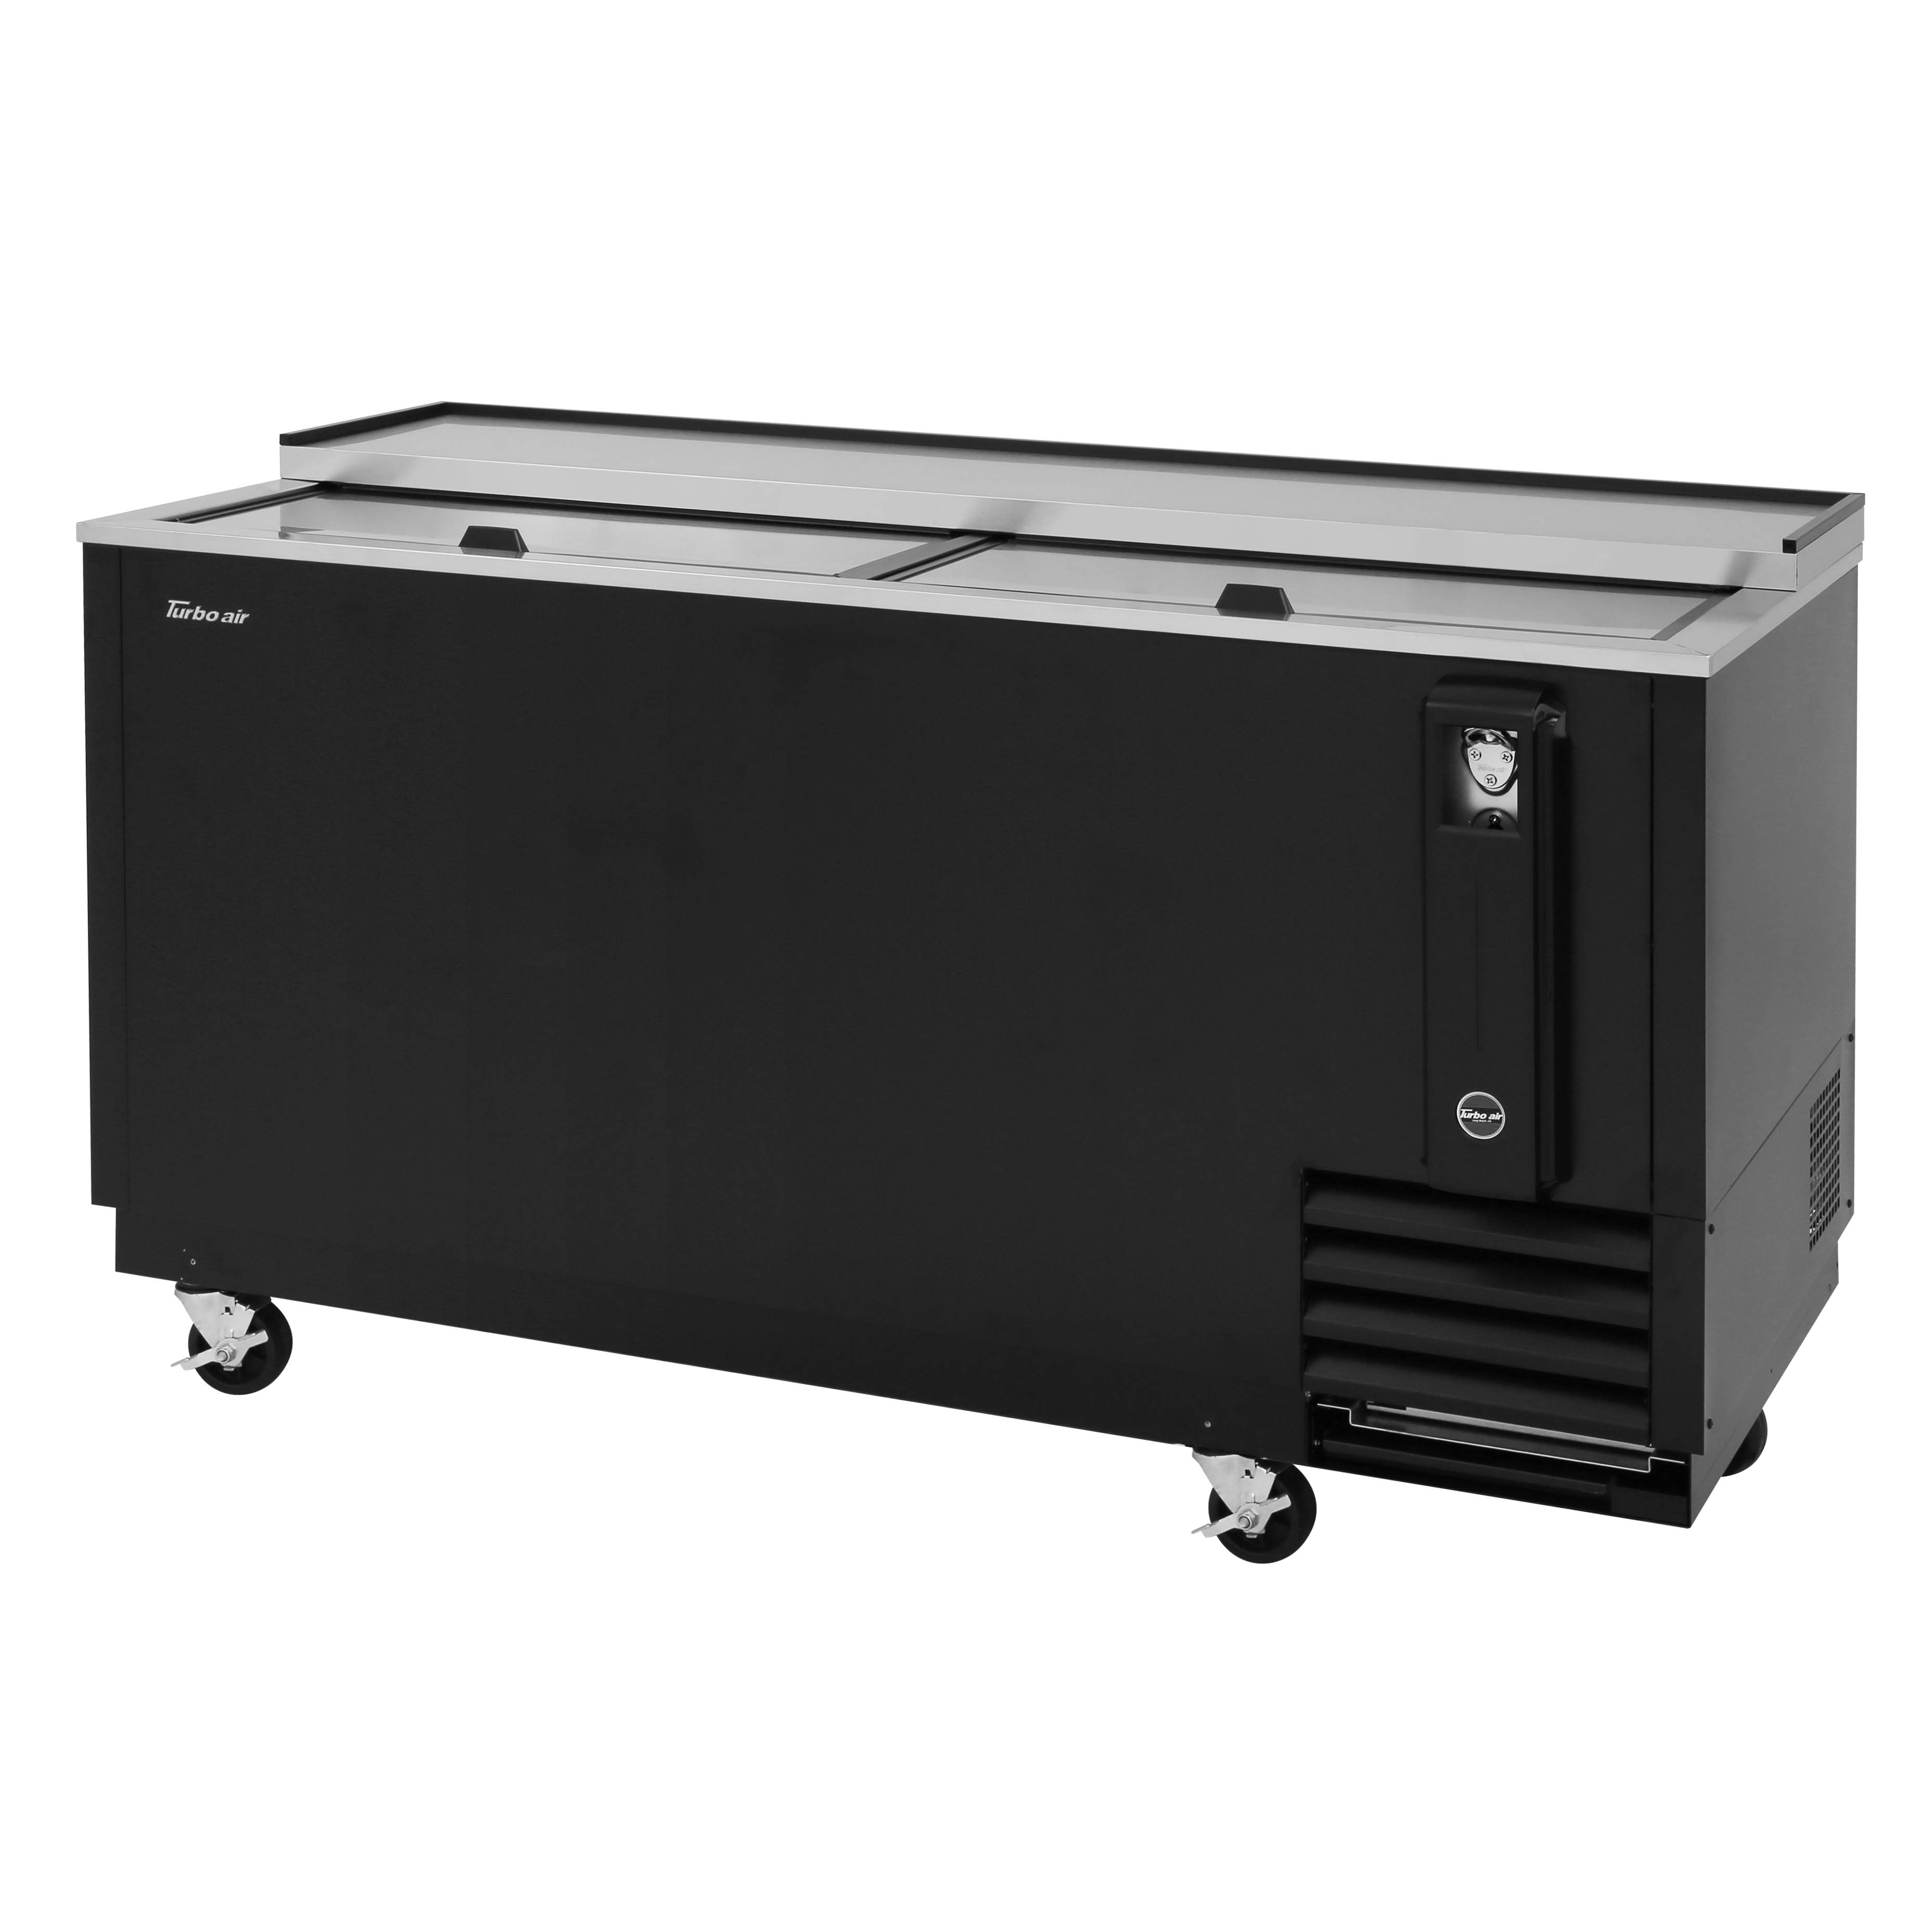 Turbo Air TBC-65SB-N6 bottle cooler